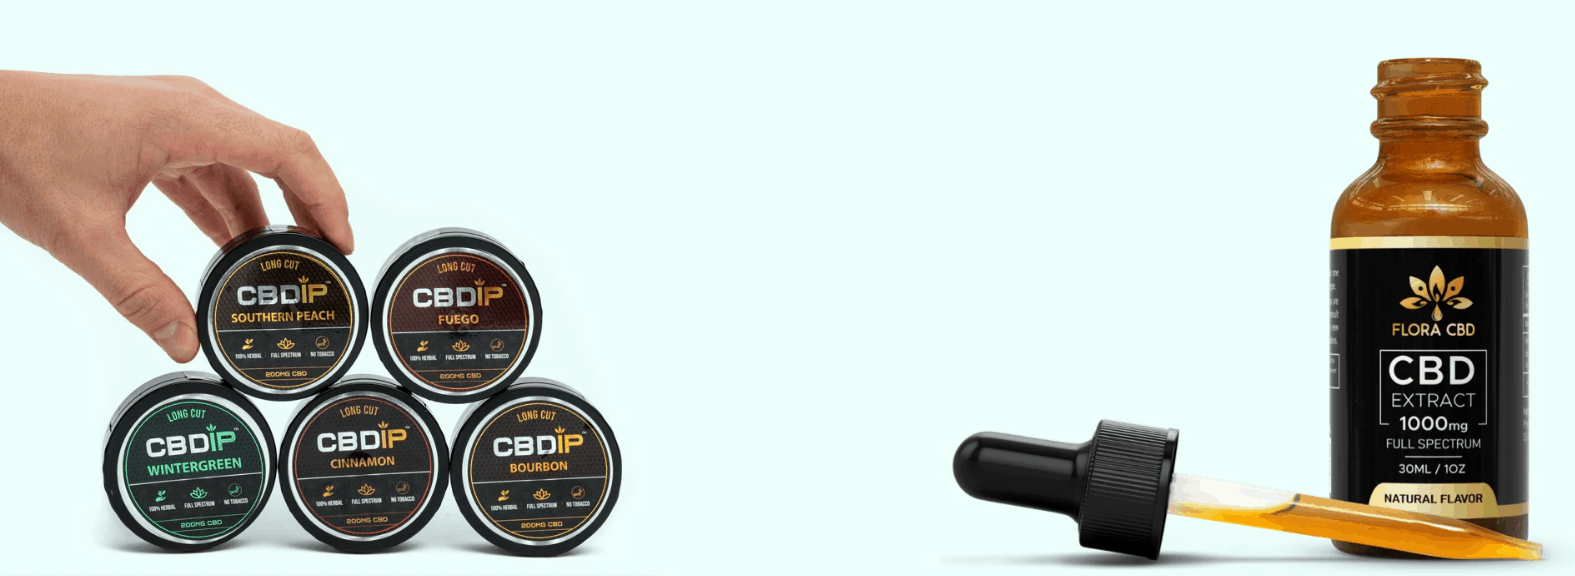 Flora CBD Coupons Our Products